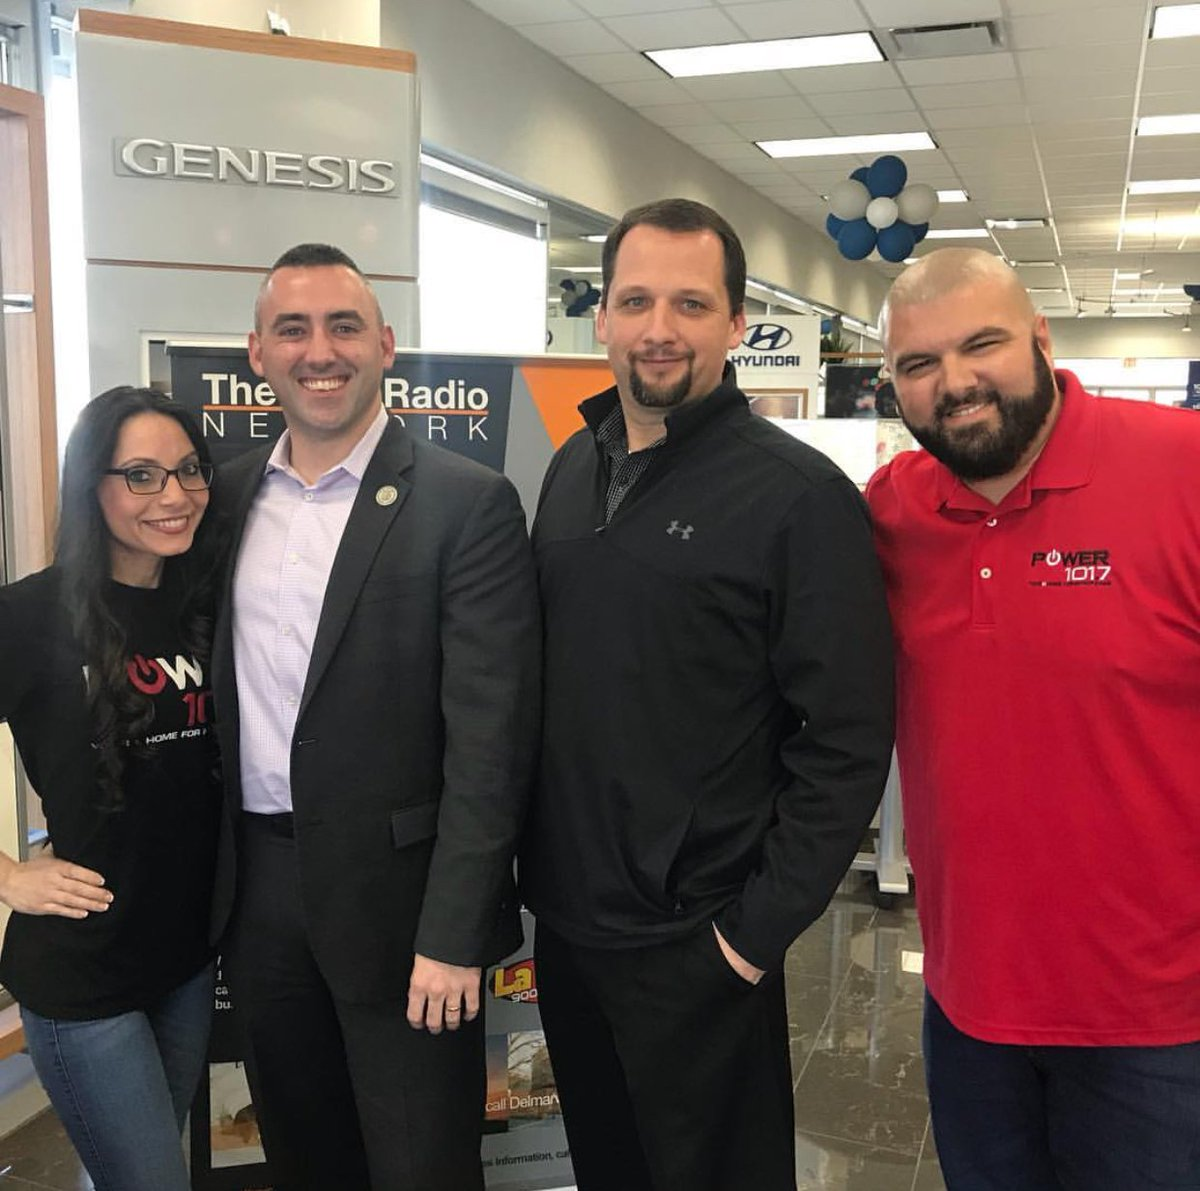 ... Show On @power1017fm Broadcasting Live From The Pohanka Hyundai Of  Salisbury Showroom With Special Guest Jake Day   Mayor Of The City Of  Salisbury!